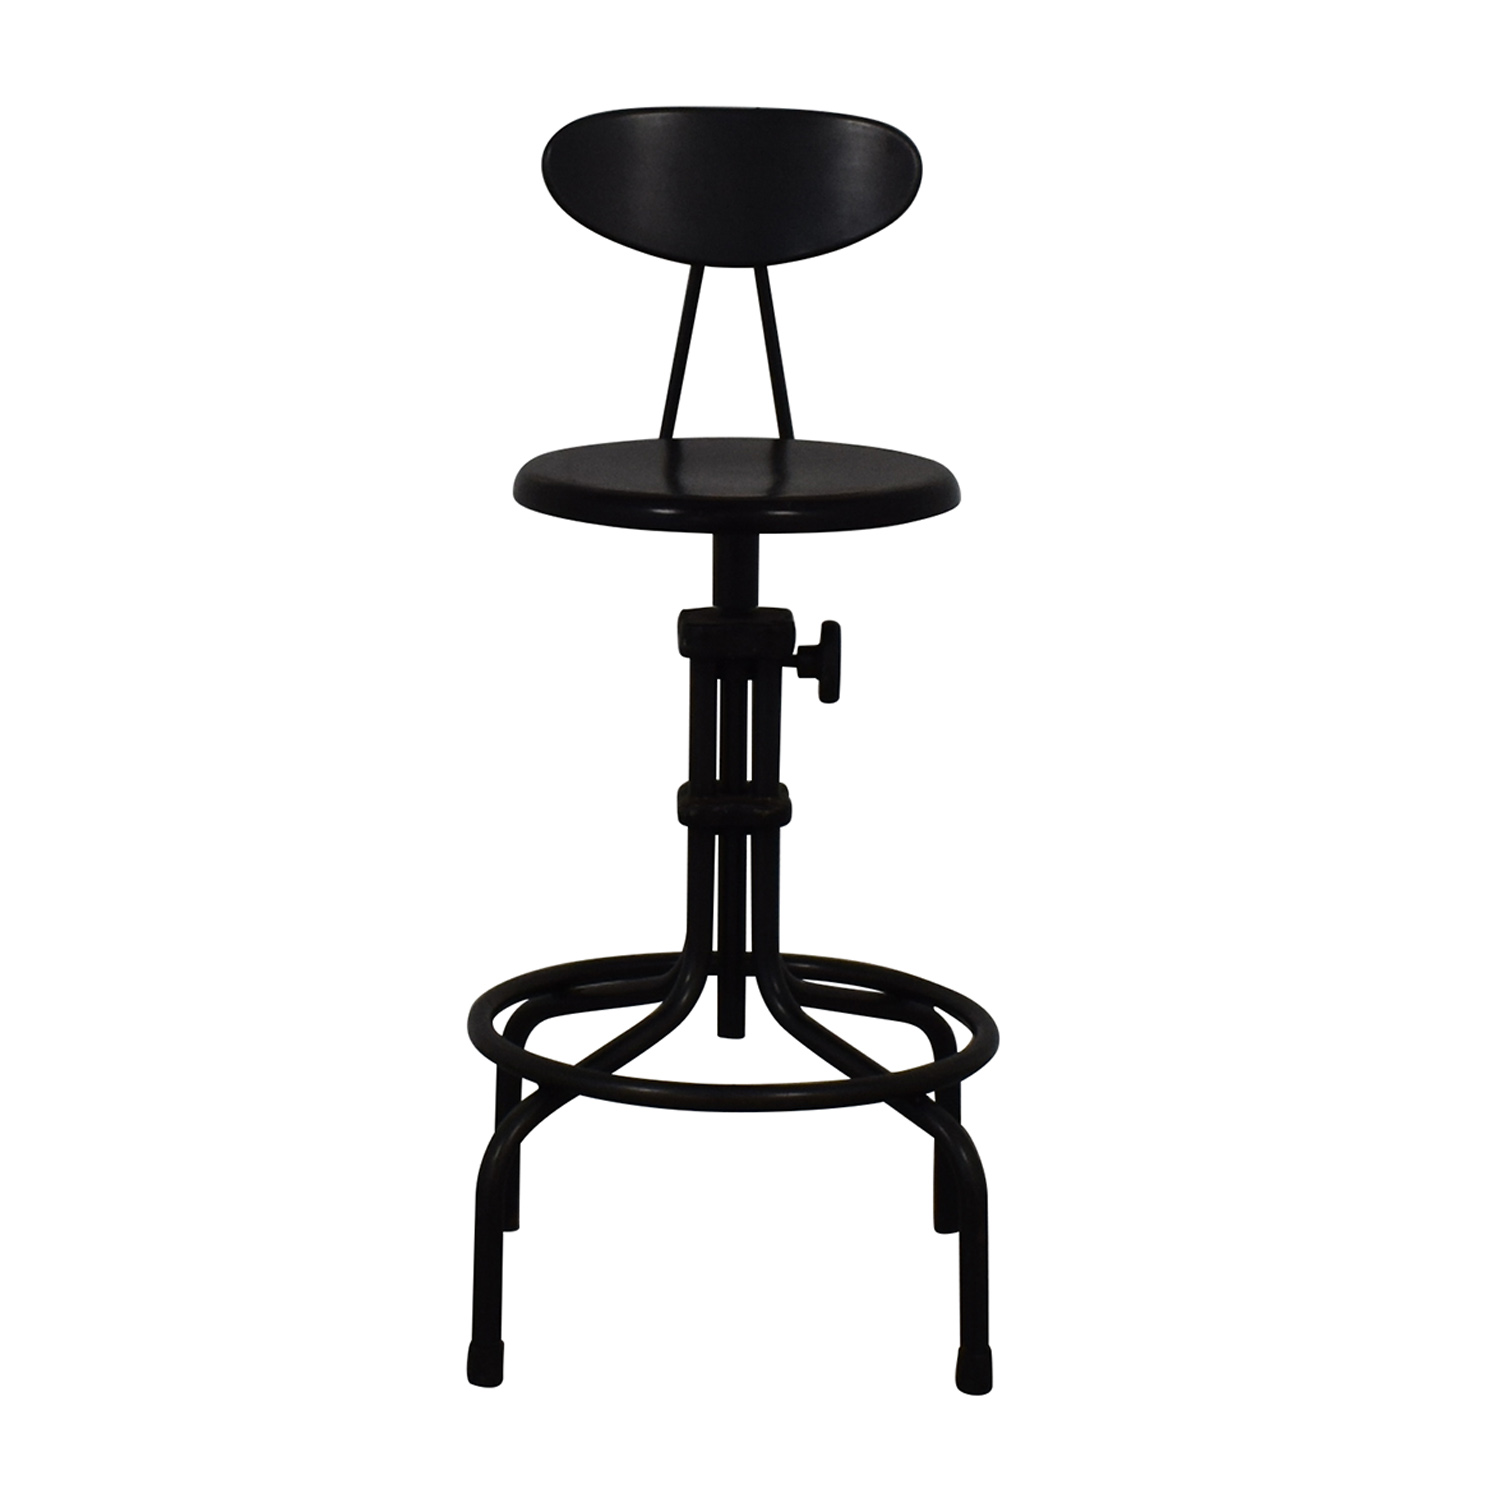 shop ABC Carpet & Home ABC Carpet & Home Industrial Stool online